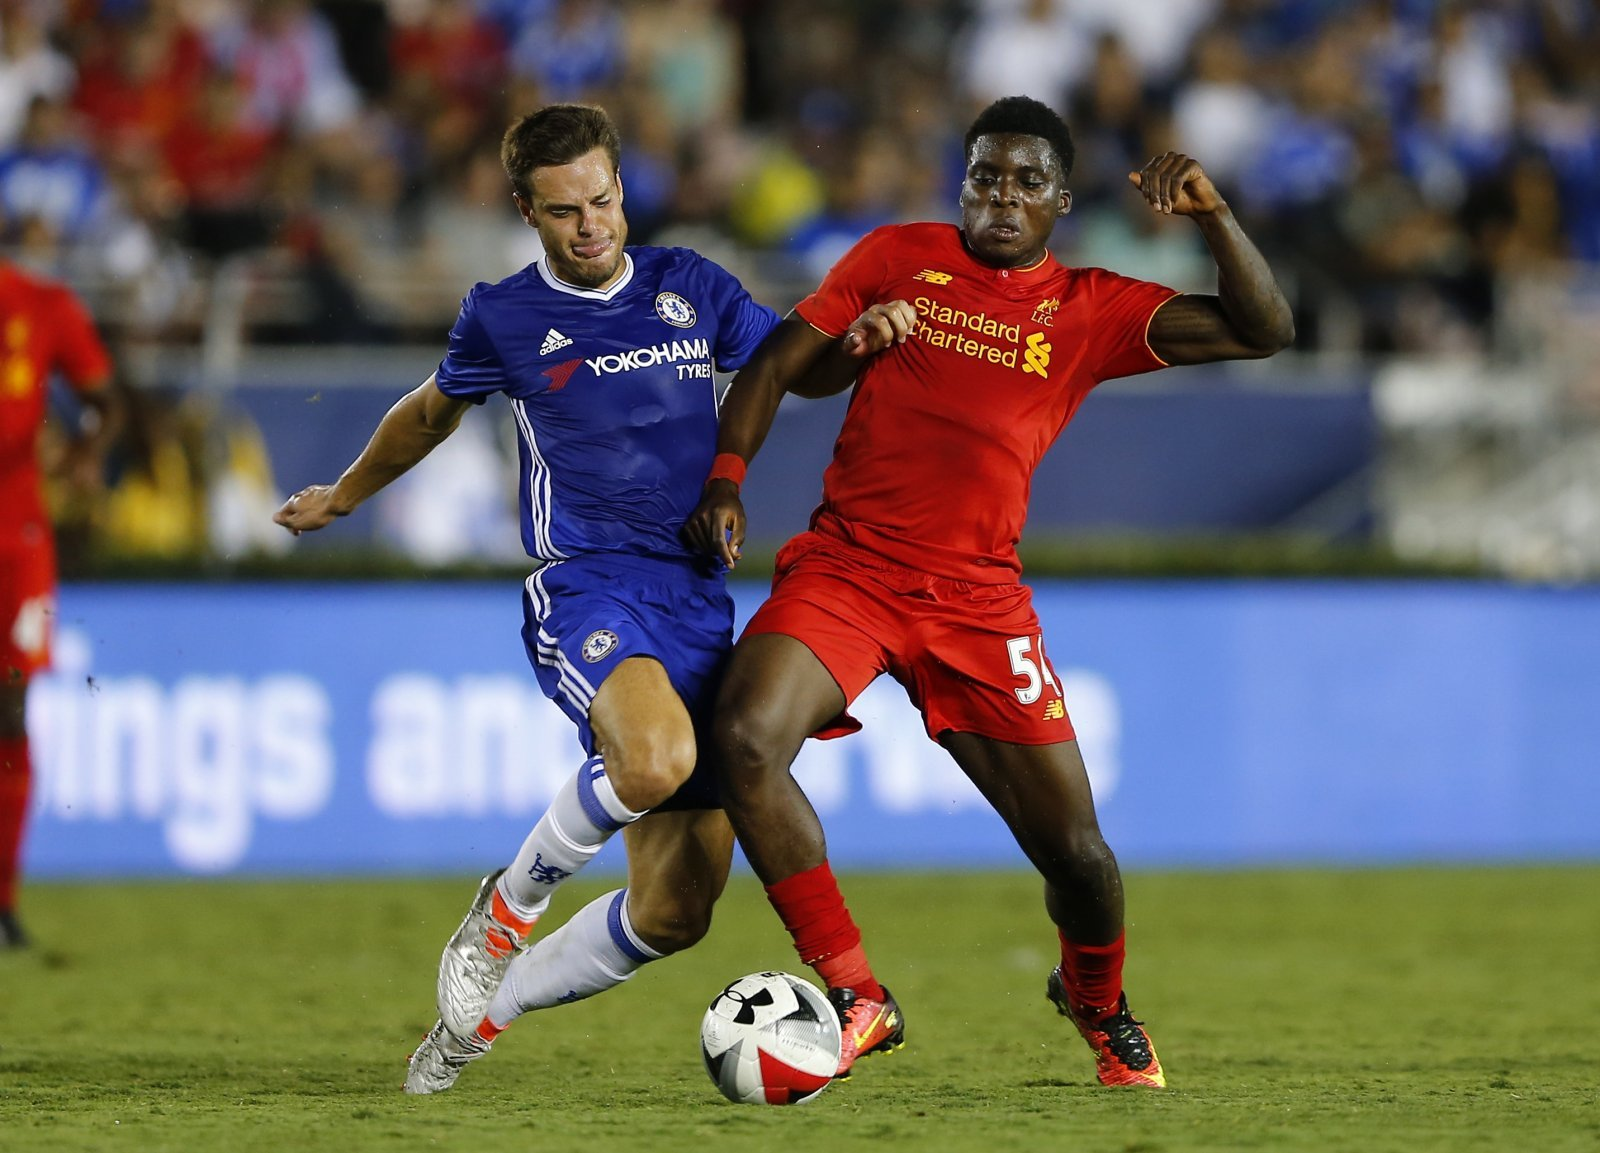 Celtic can't allow someone else to sign Liverpool's Sheyi Ojo